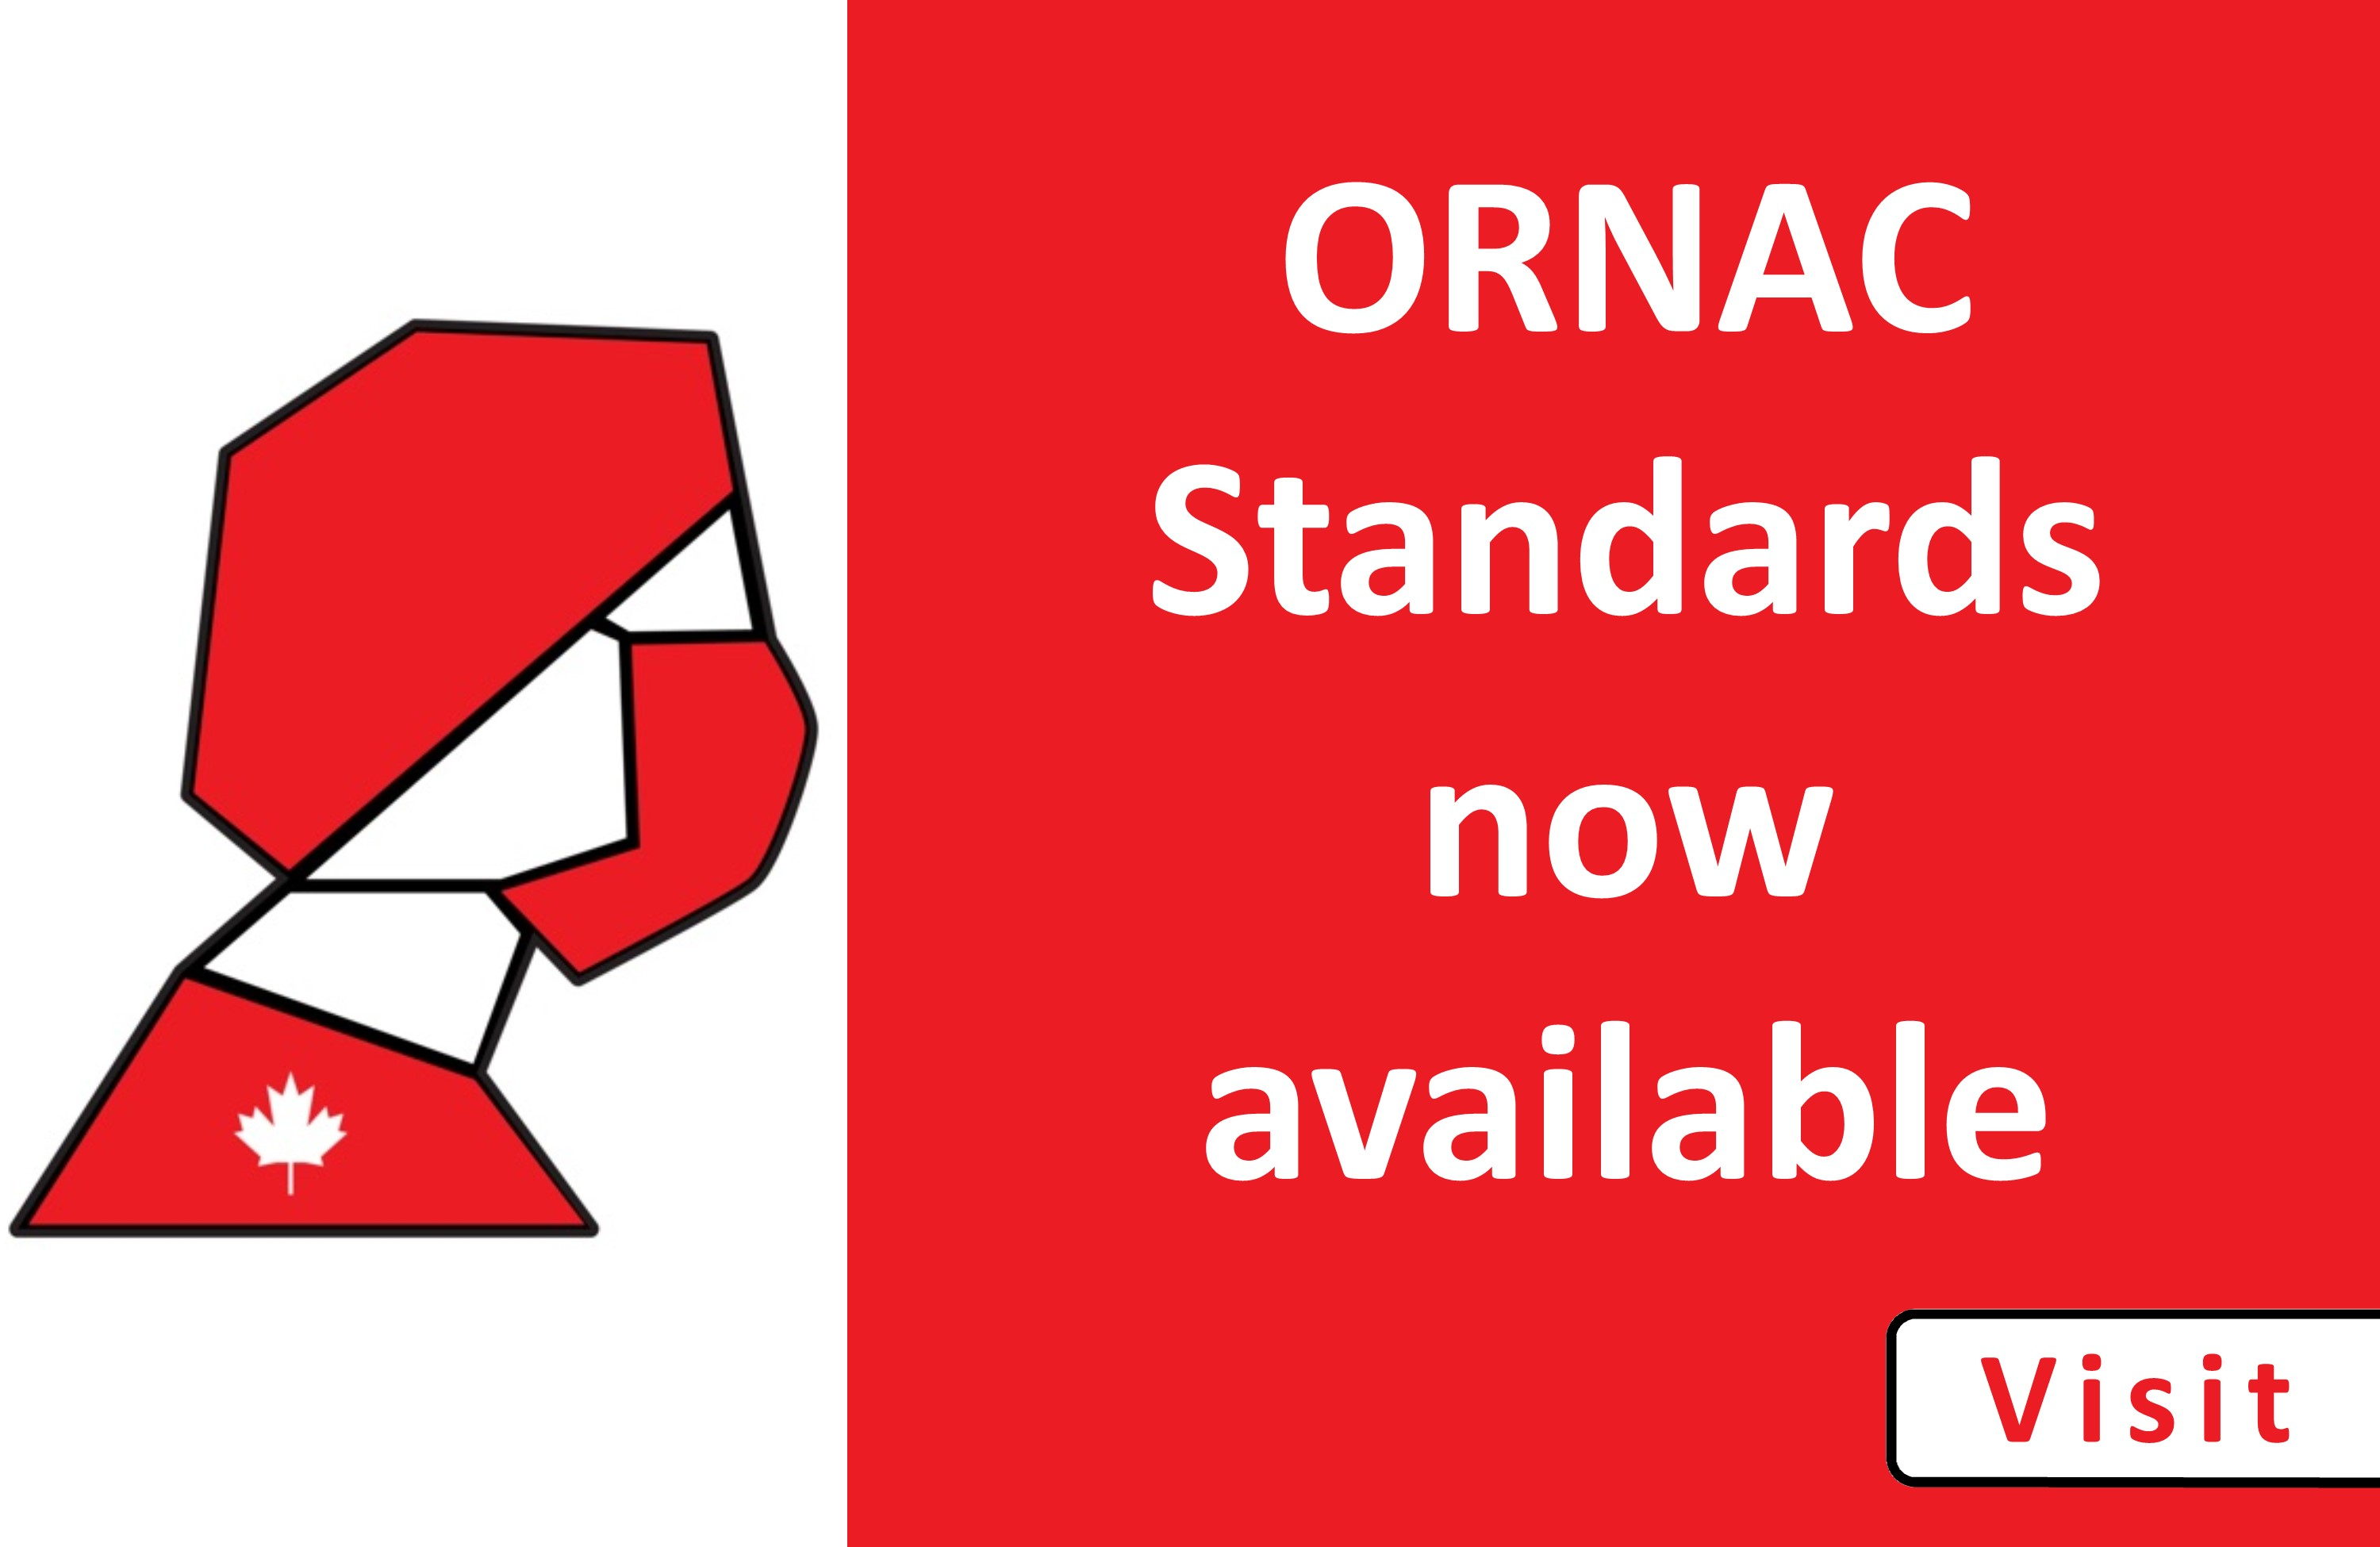 ORNAC Standards now available